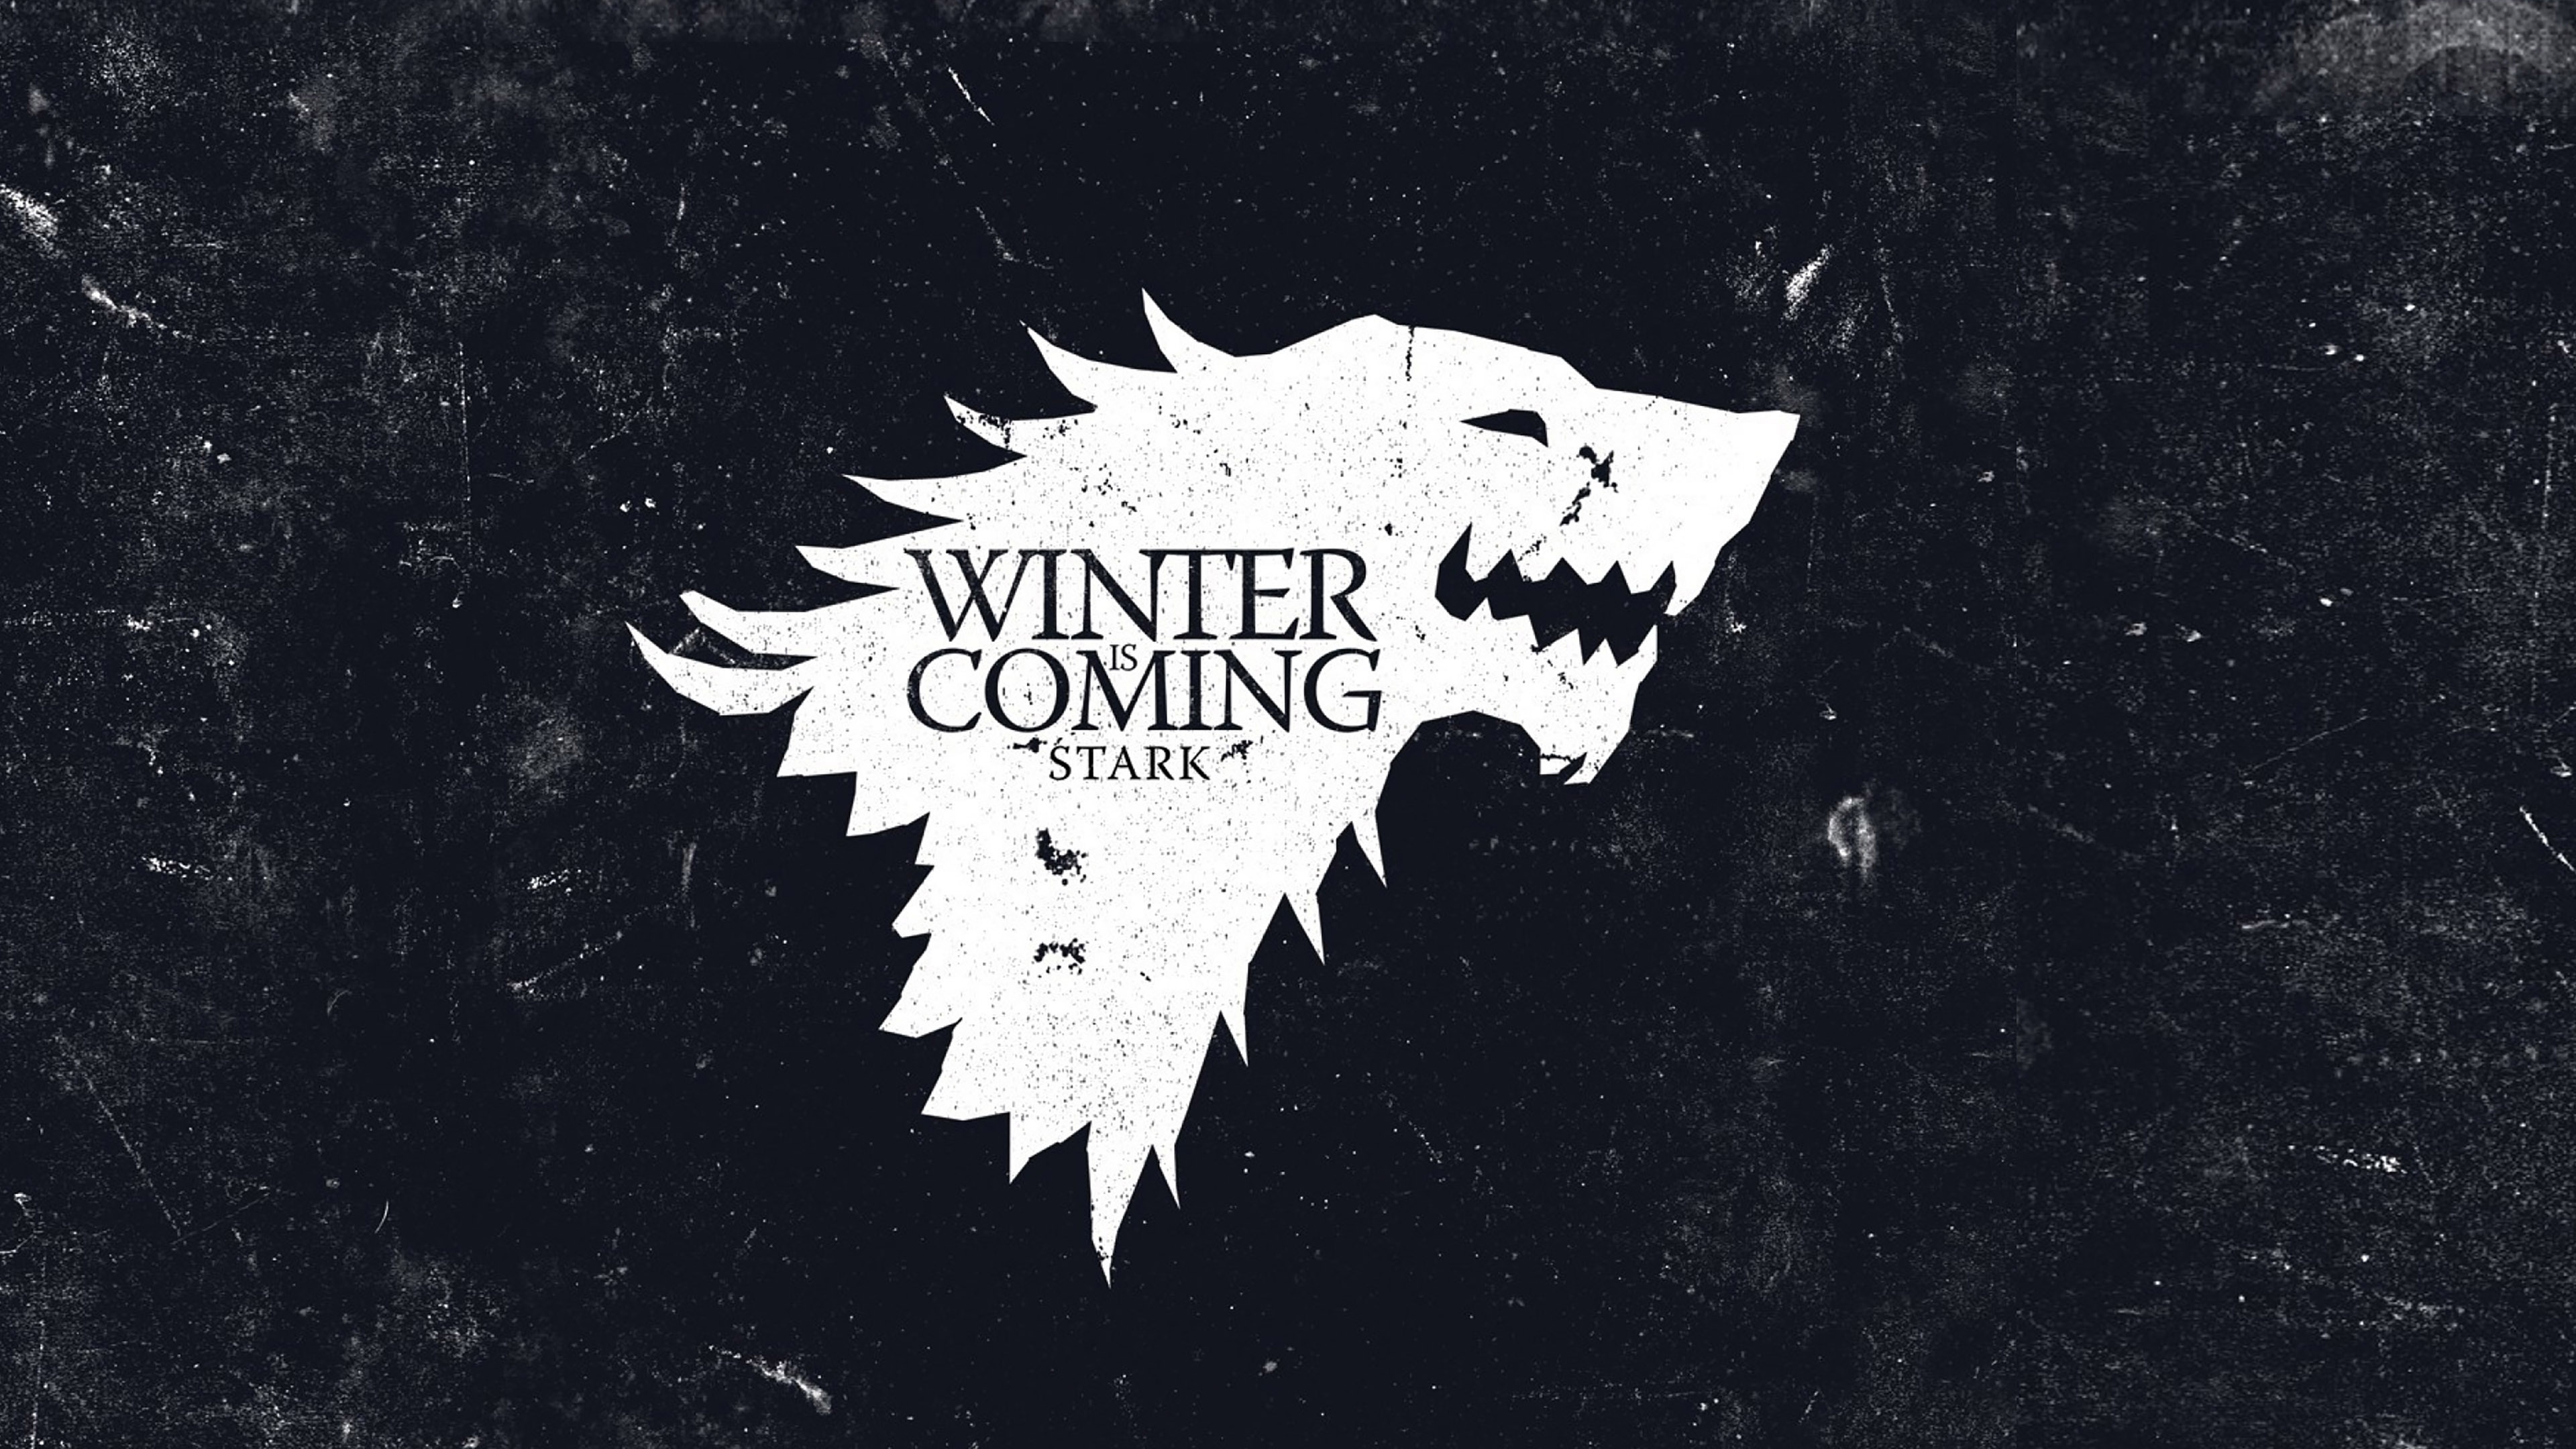 ab90 wallpaper game of thrones winter is coming